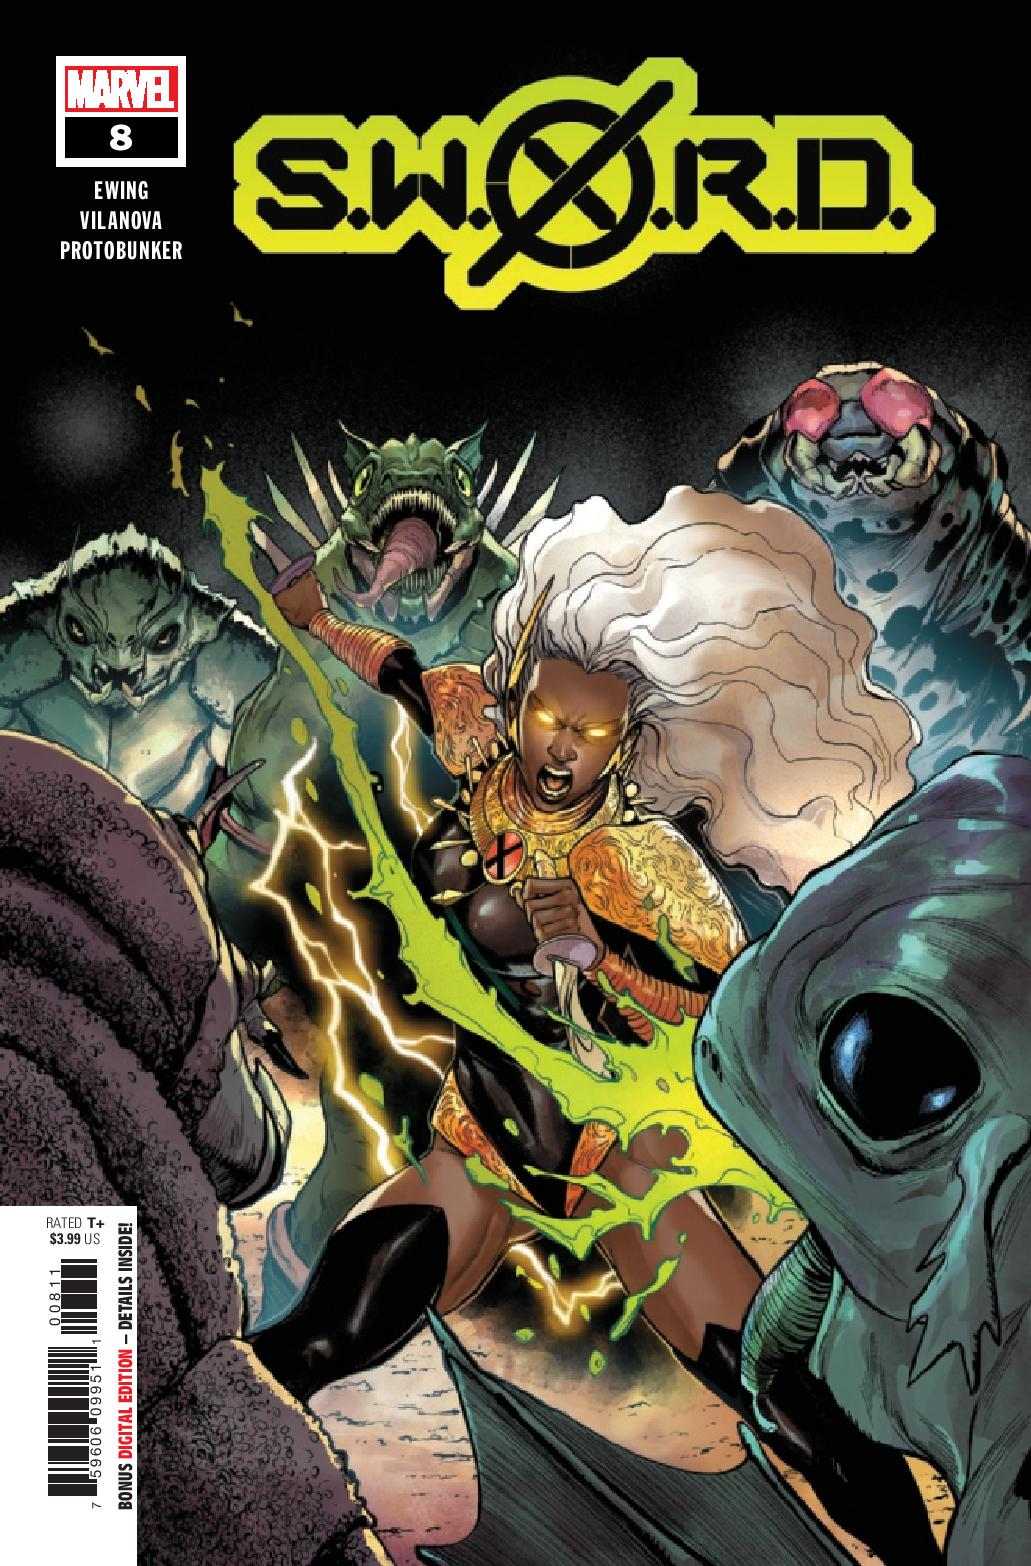 Preview: S.W.O.R.D. #8 - Graphic Policy